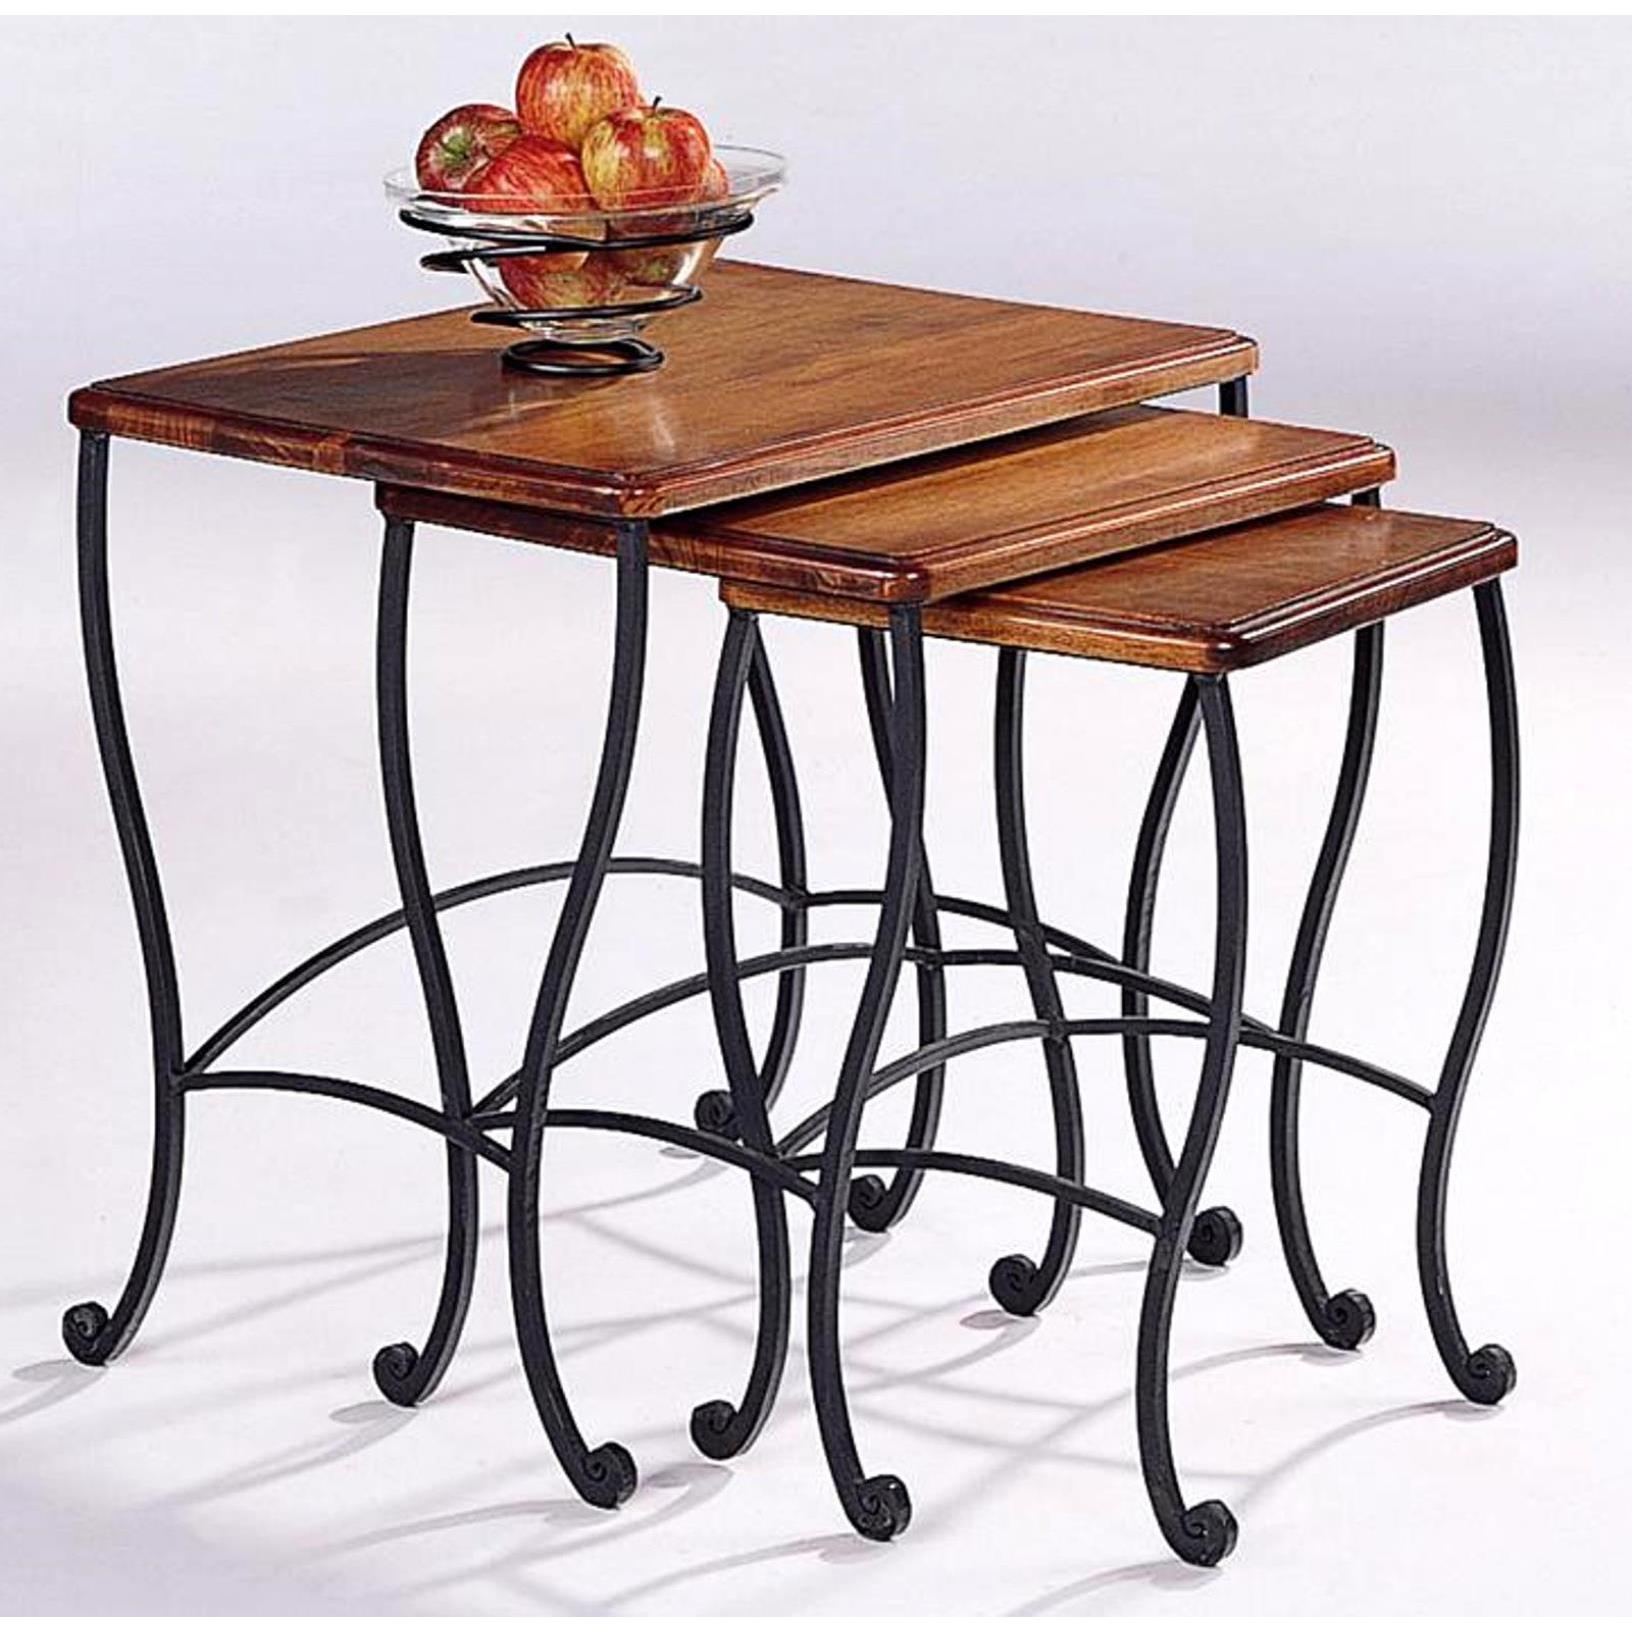 Antique Rustic Brown 3-piece Nesting Table Set (Rustic Br...